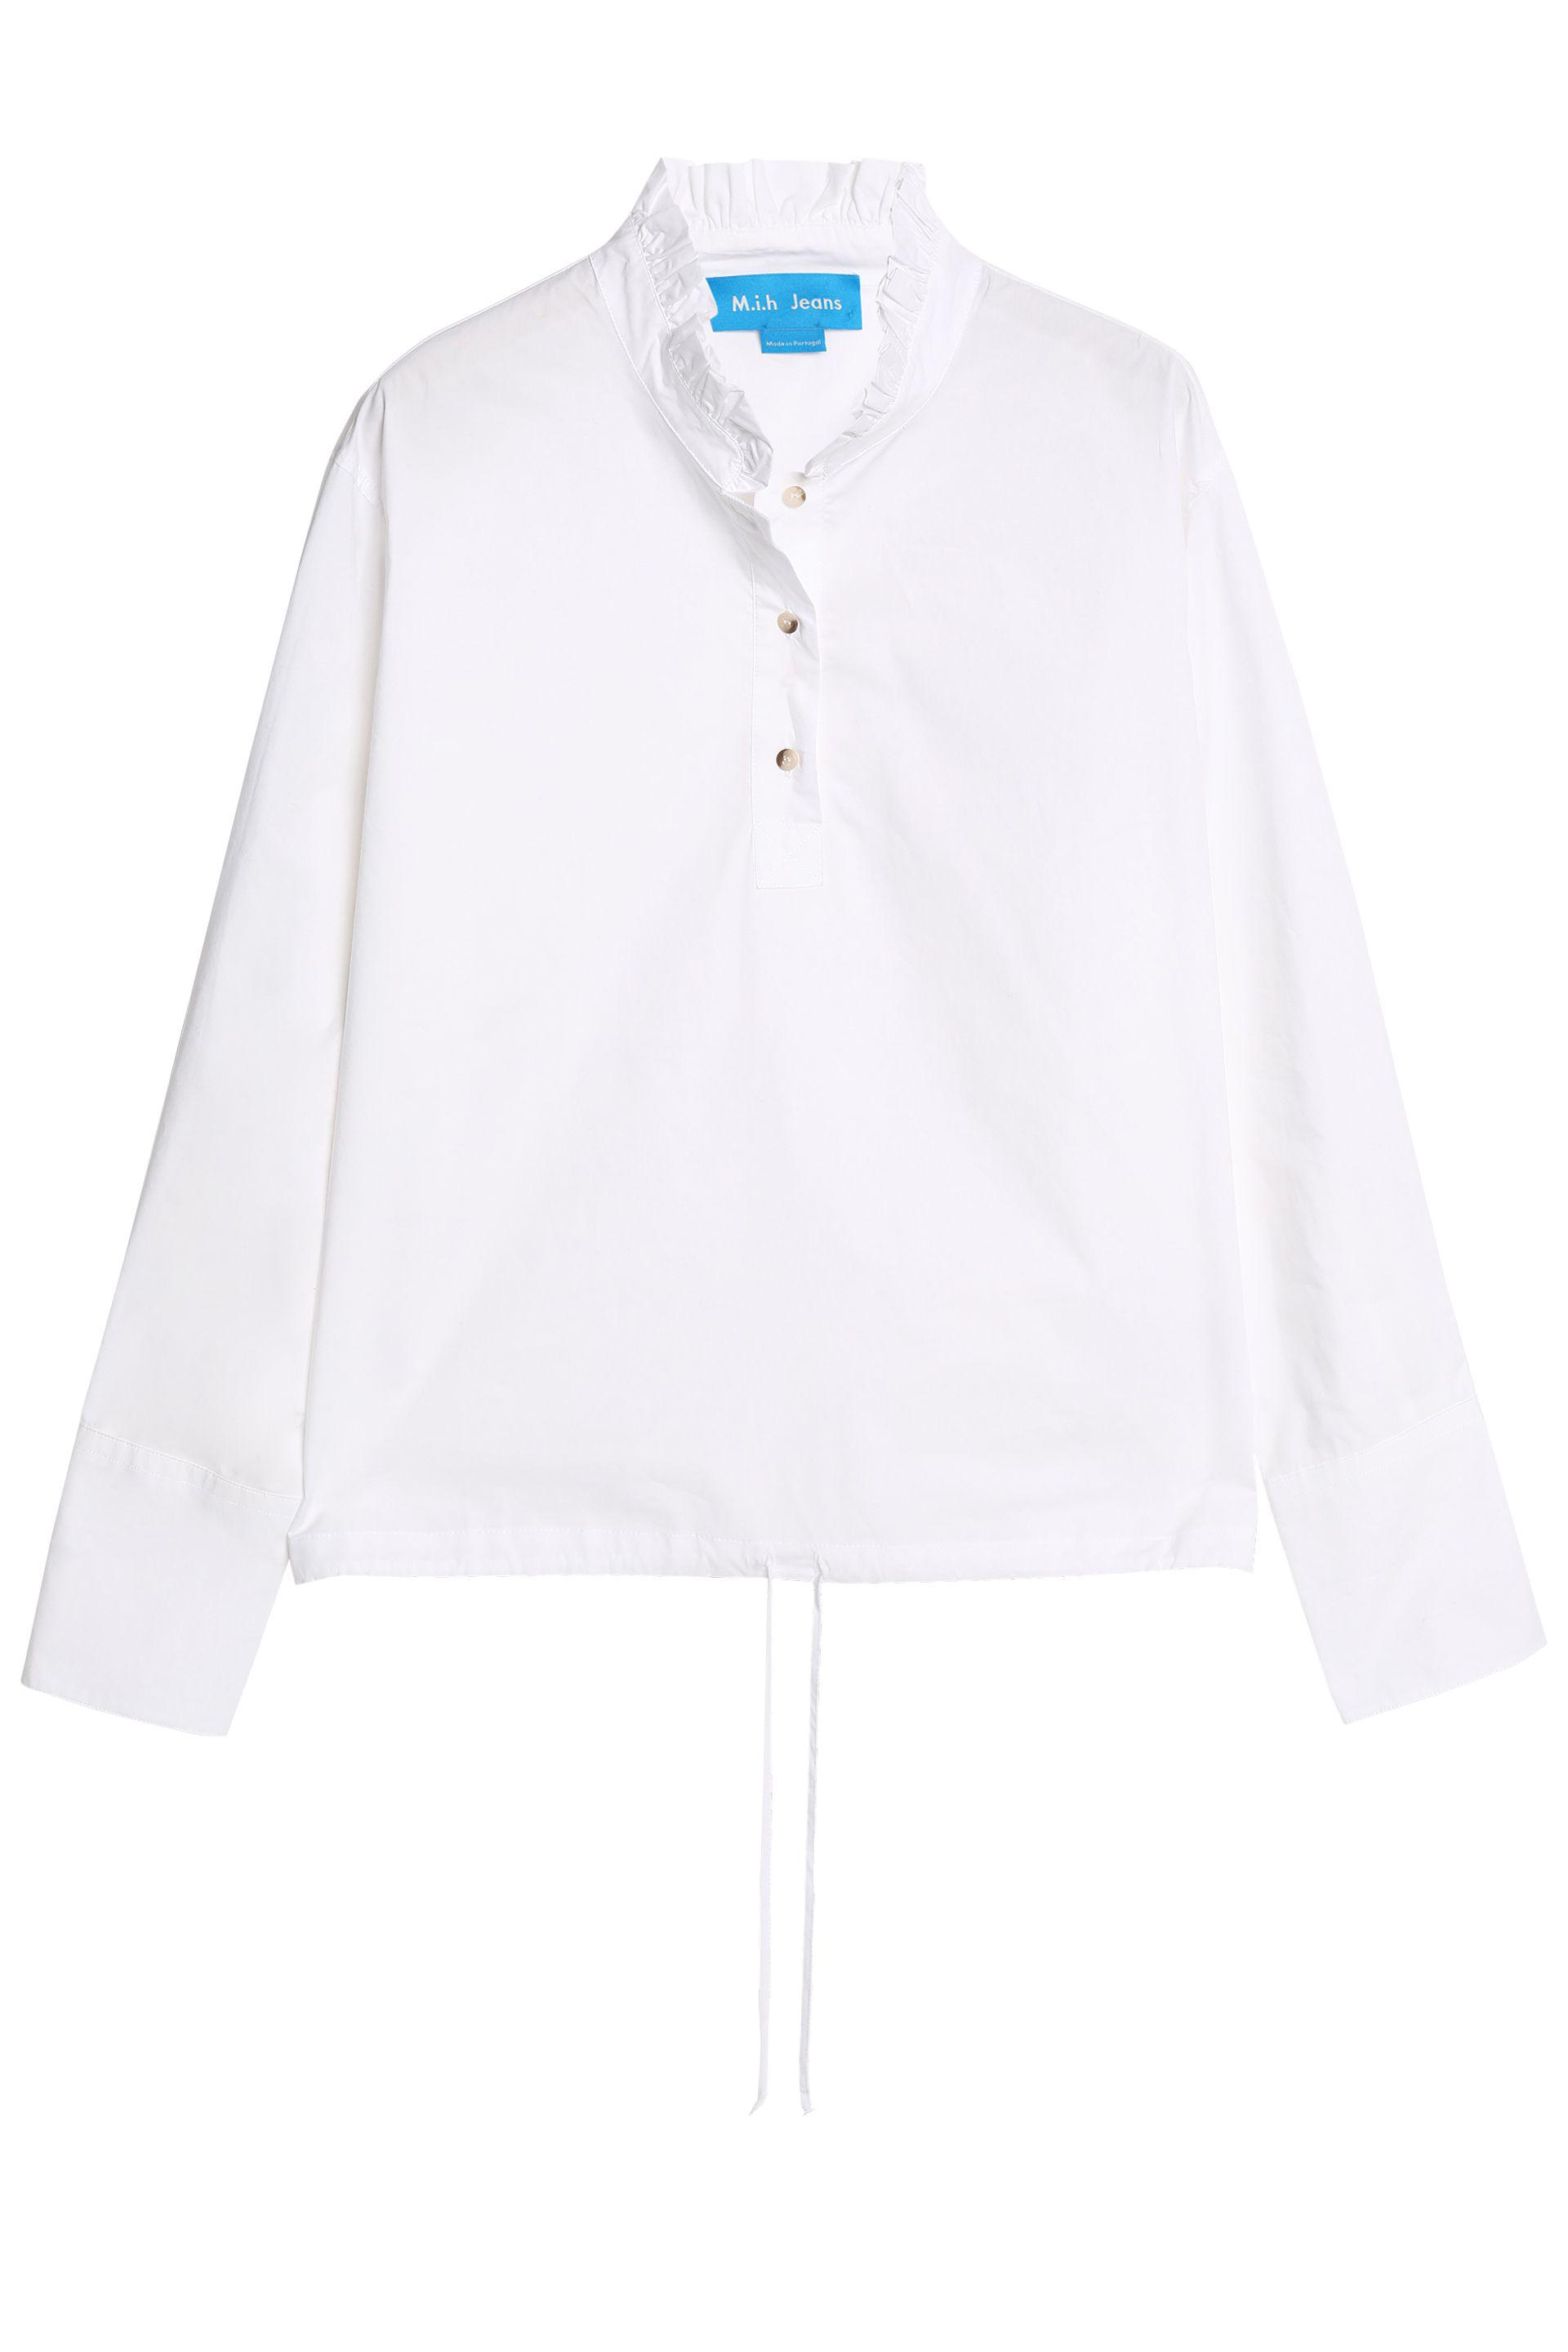 Ellery Woman Ruffle-trimmed Striped Fil Coupé Cotton Shirt Light Blue Size 10 Ellery Discount Browse Sale Best Store To Get For Nice Cheap Price awudz4